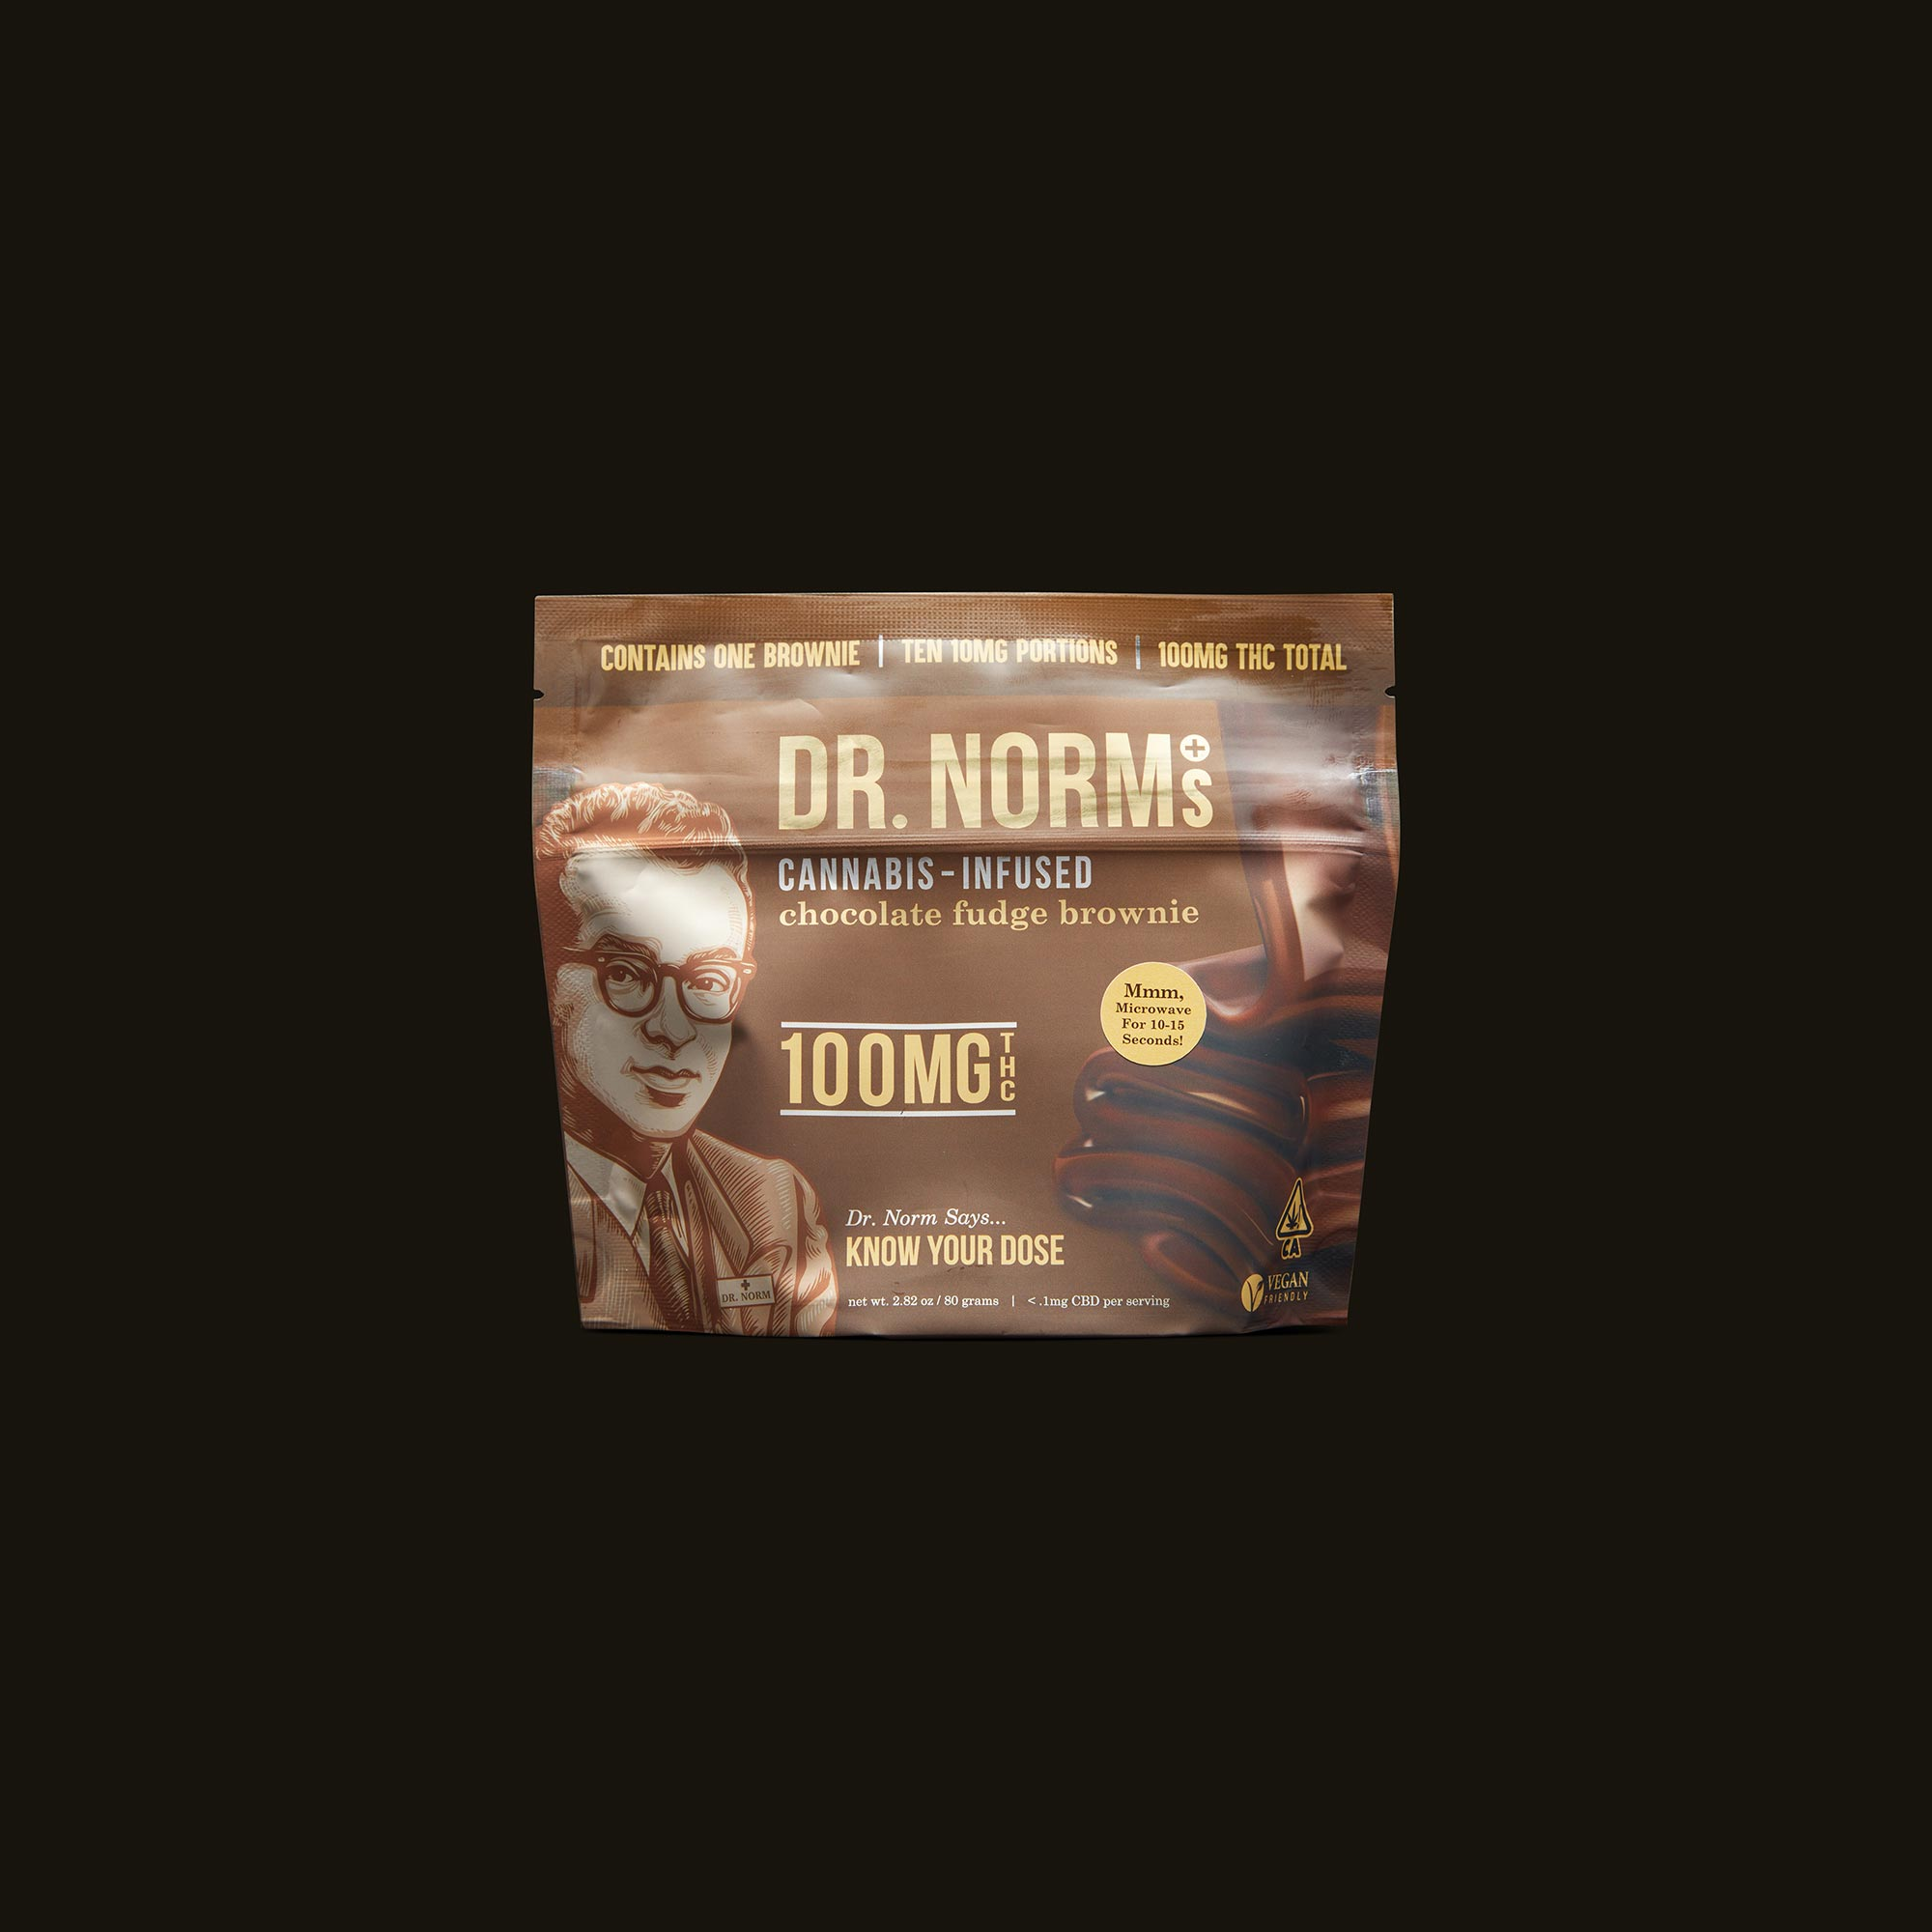 Dr. Norm's Chocolate Fudge Brownie Front Packaging